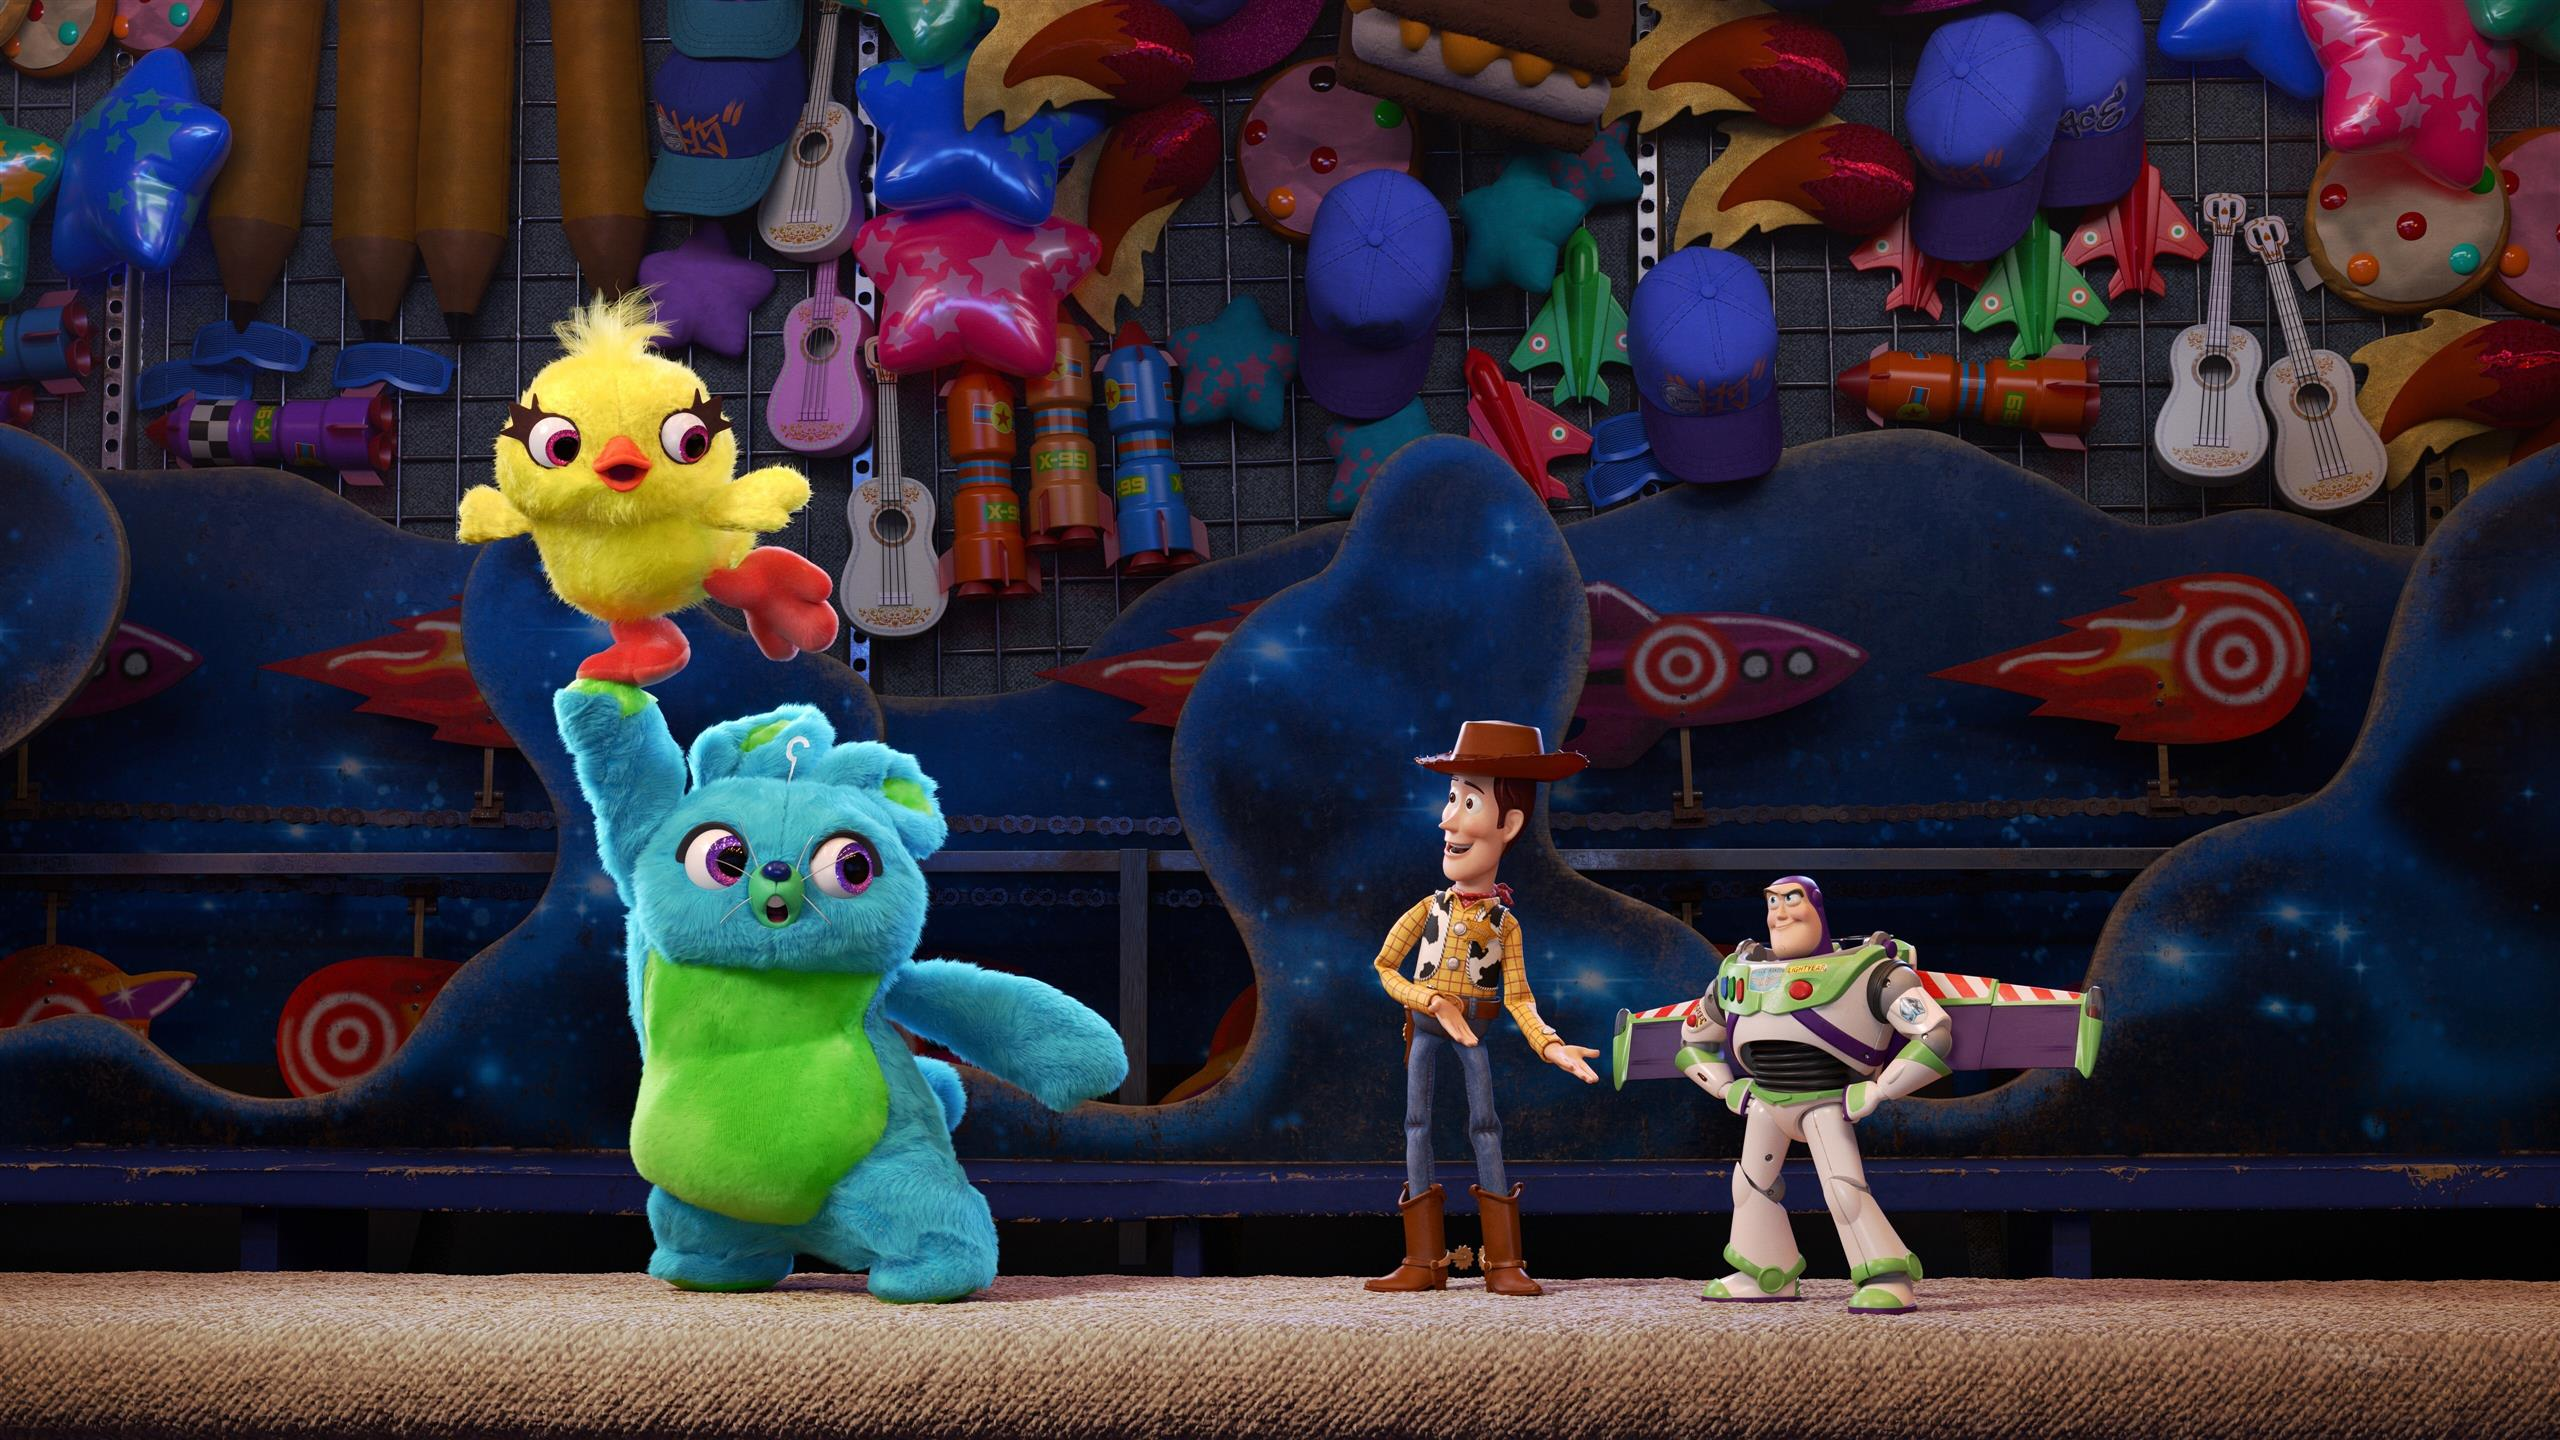 2560x1440 5K Photo of Hollywood 2019 Movie Toy Story 4